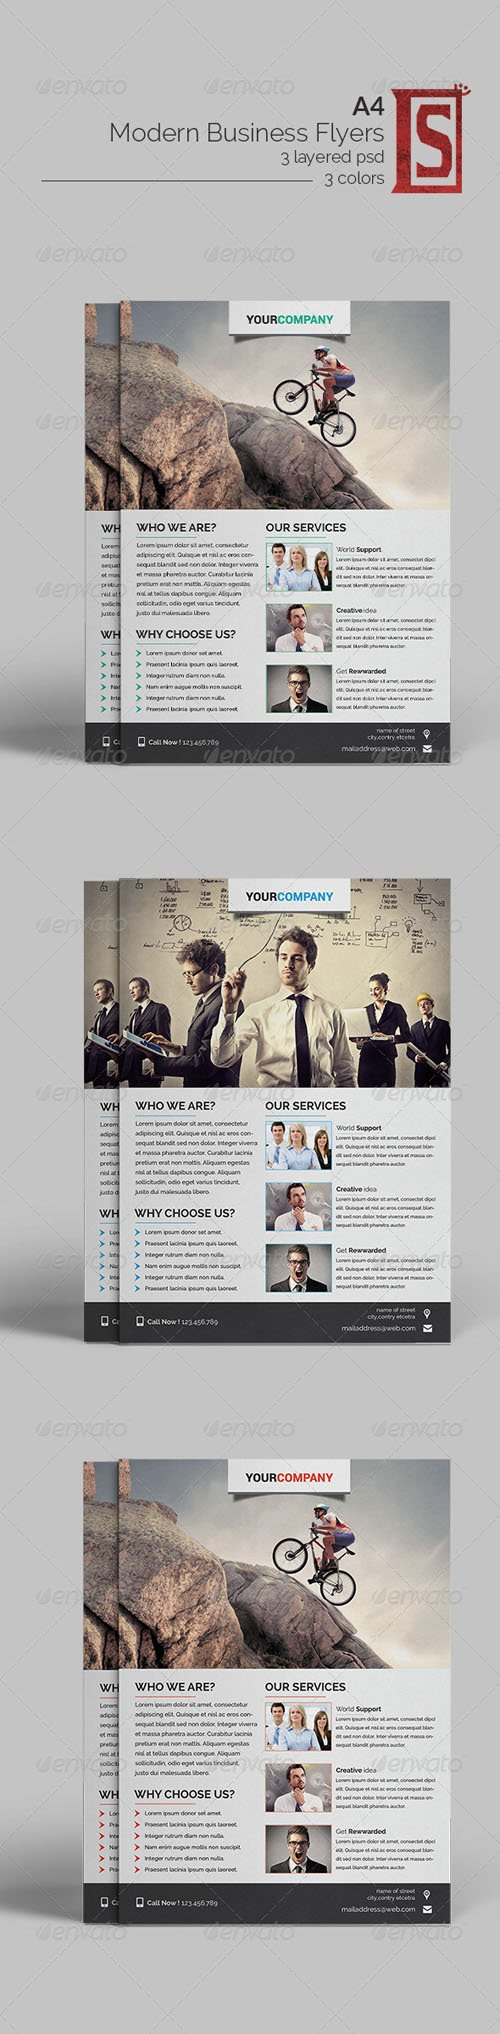 Graphicriver - Multipurpose Business Flyer 8414532